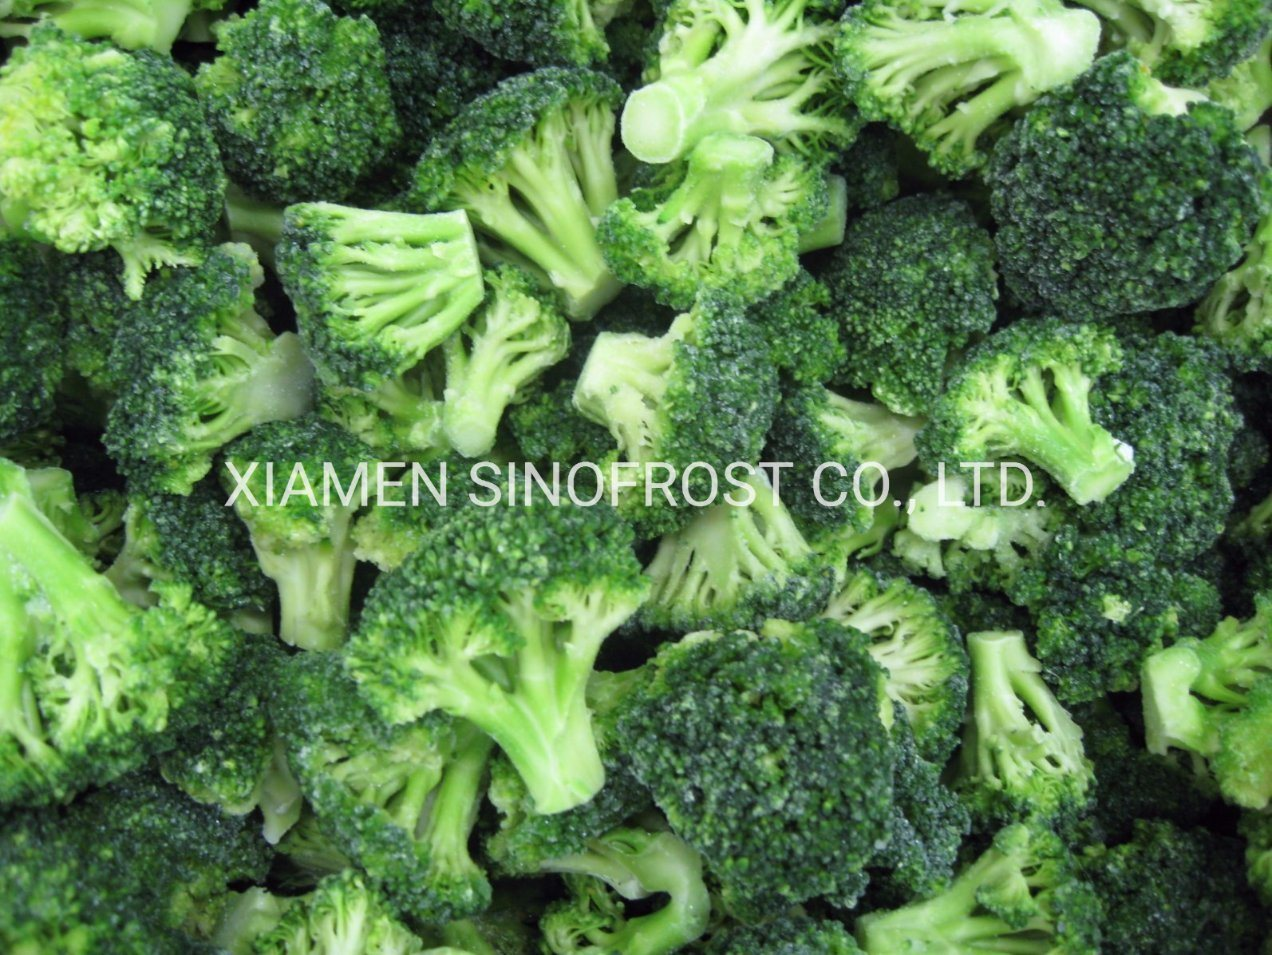 Low Prices Good Quality, New Crop IQF Cut Broccoli, Frozen Cut Broccoli, IQF Broccoli Cuts, Frozen Broccoli Cuts pictures & photos